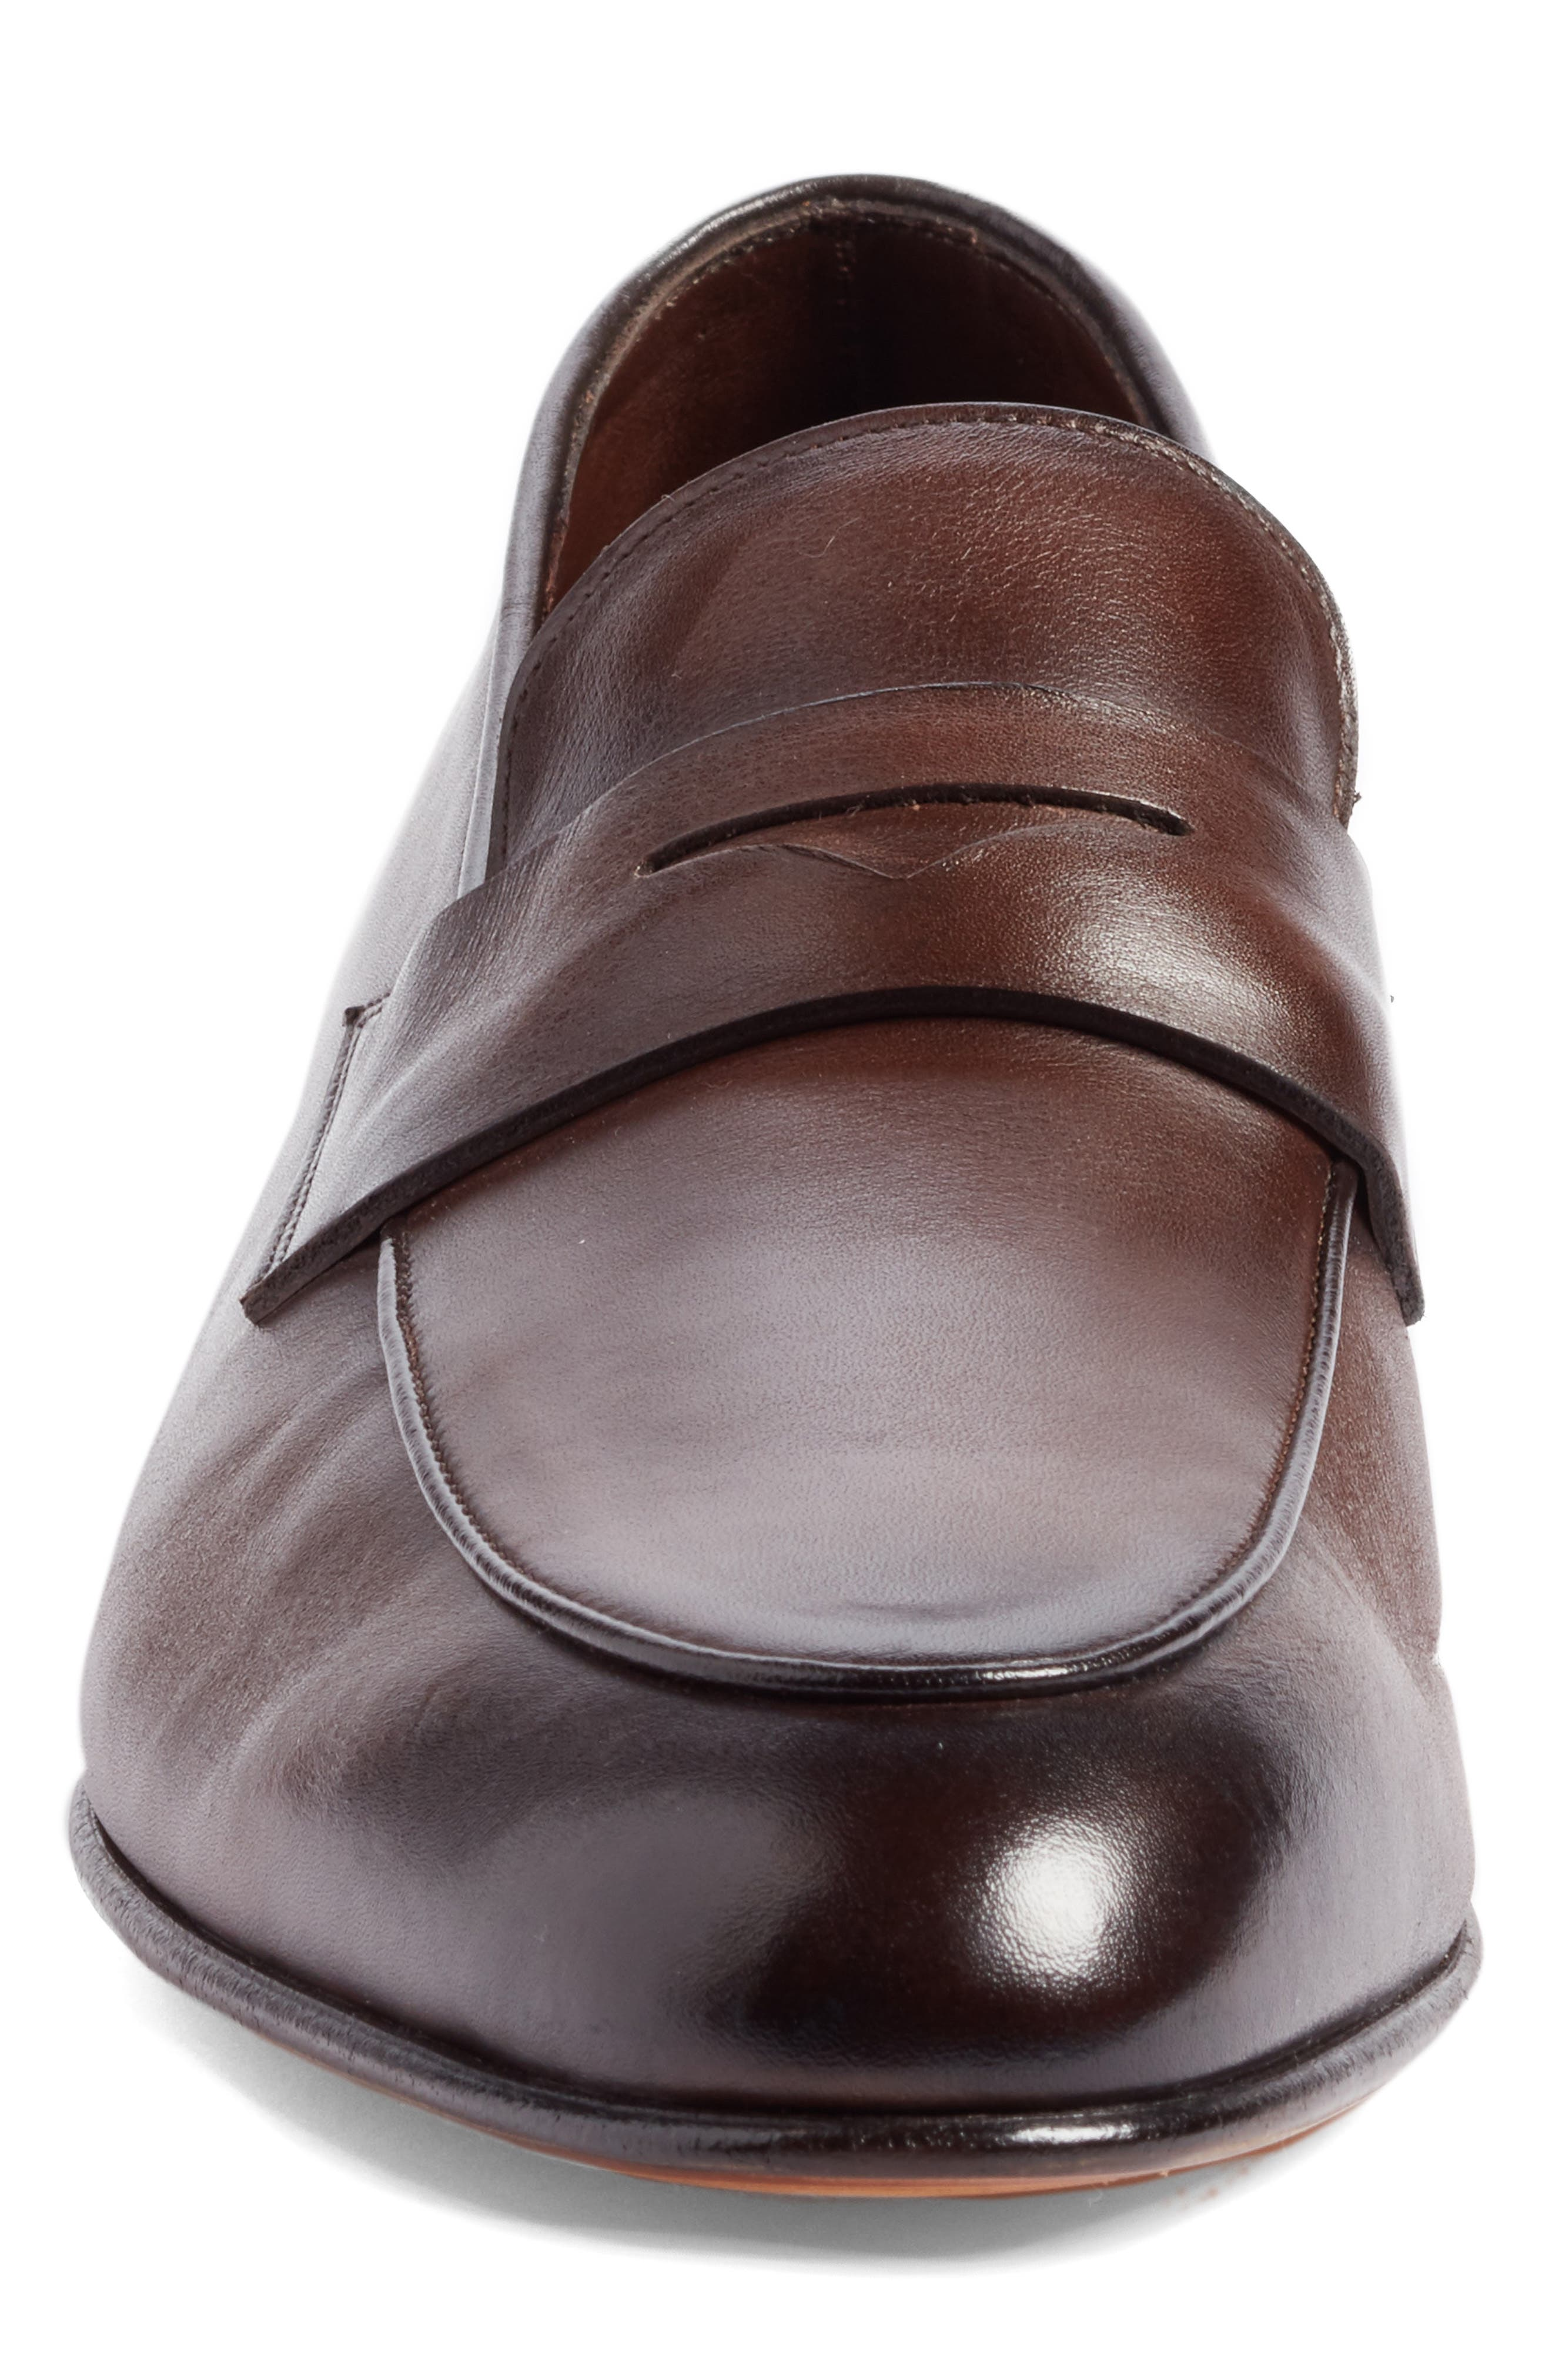 Fontaine Penny Loafer,                             Alternate thumbnail 4, color,                             209